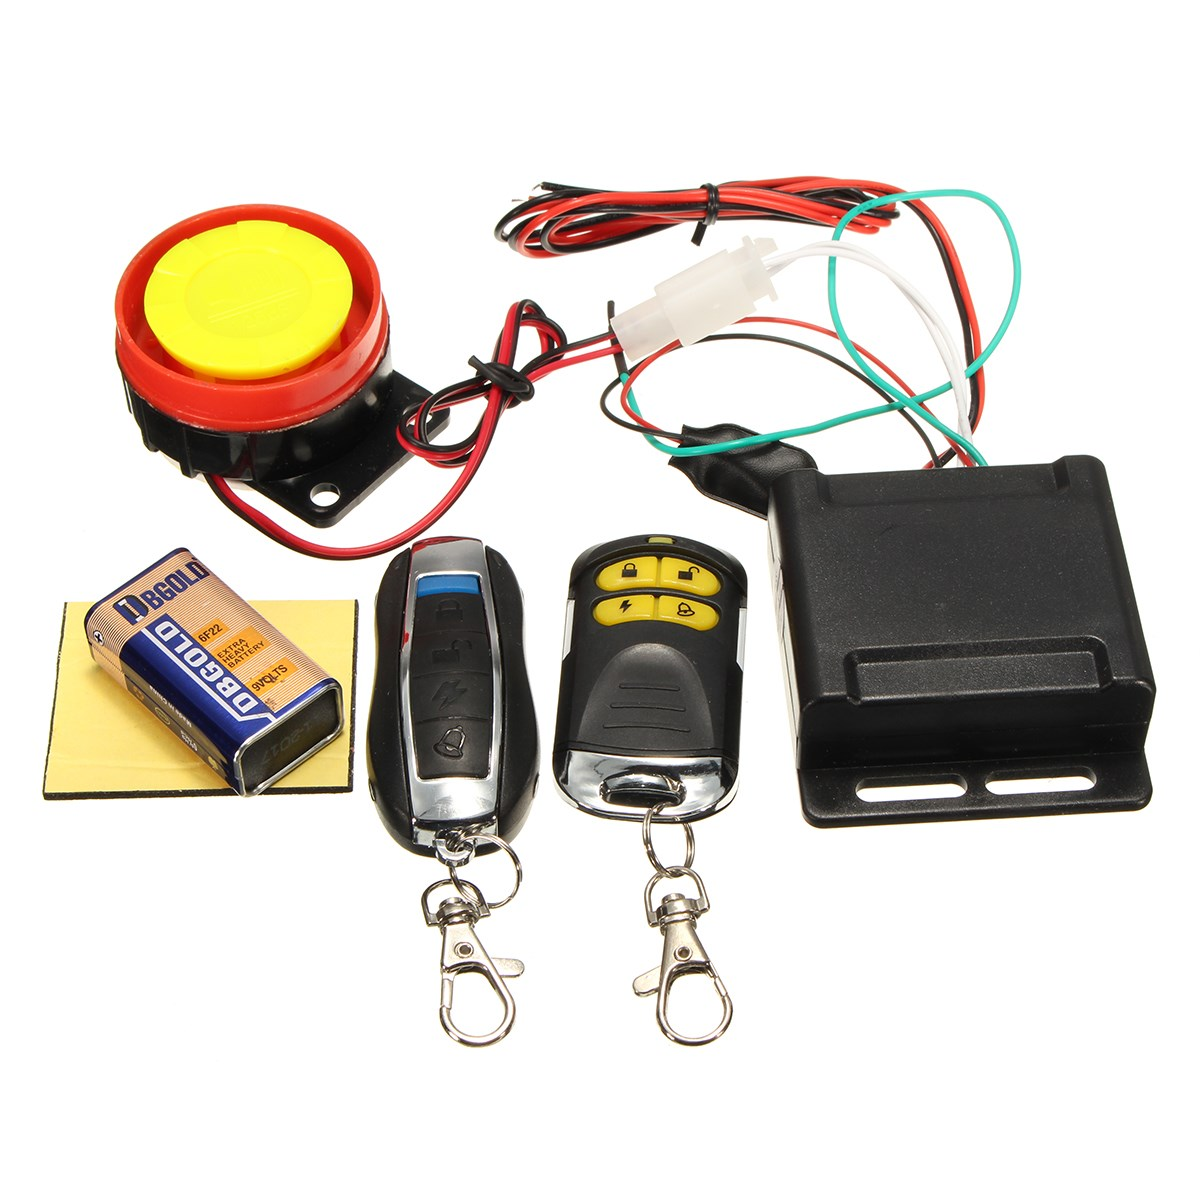 NEW 12V Motorcycle Theft Protection Bike Anti-theft Security Alarm System Remote Control Engine Start 2 way lcd motorcycle alarm system motorbike anti theft security theft protection 3500m monitoring range remote engine start